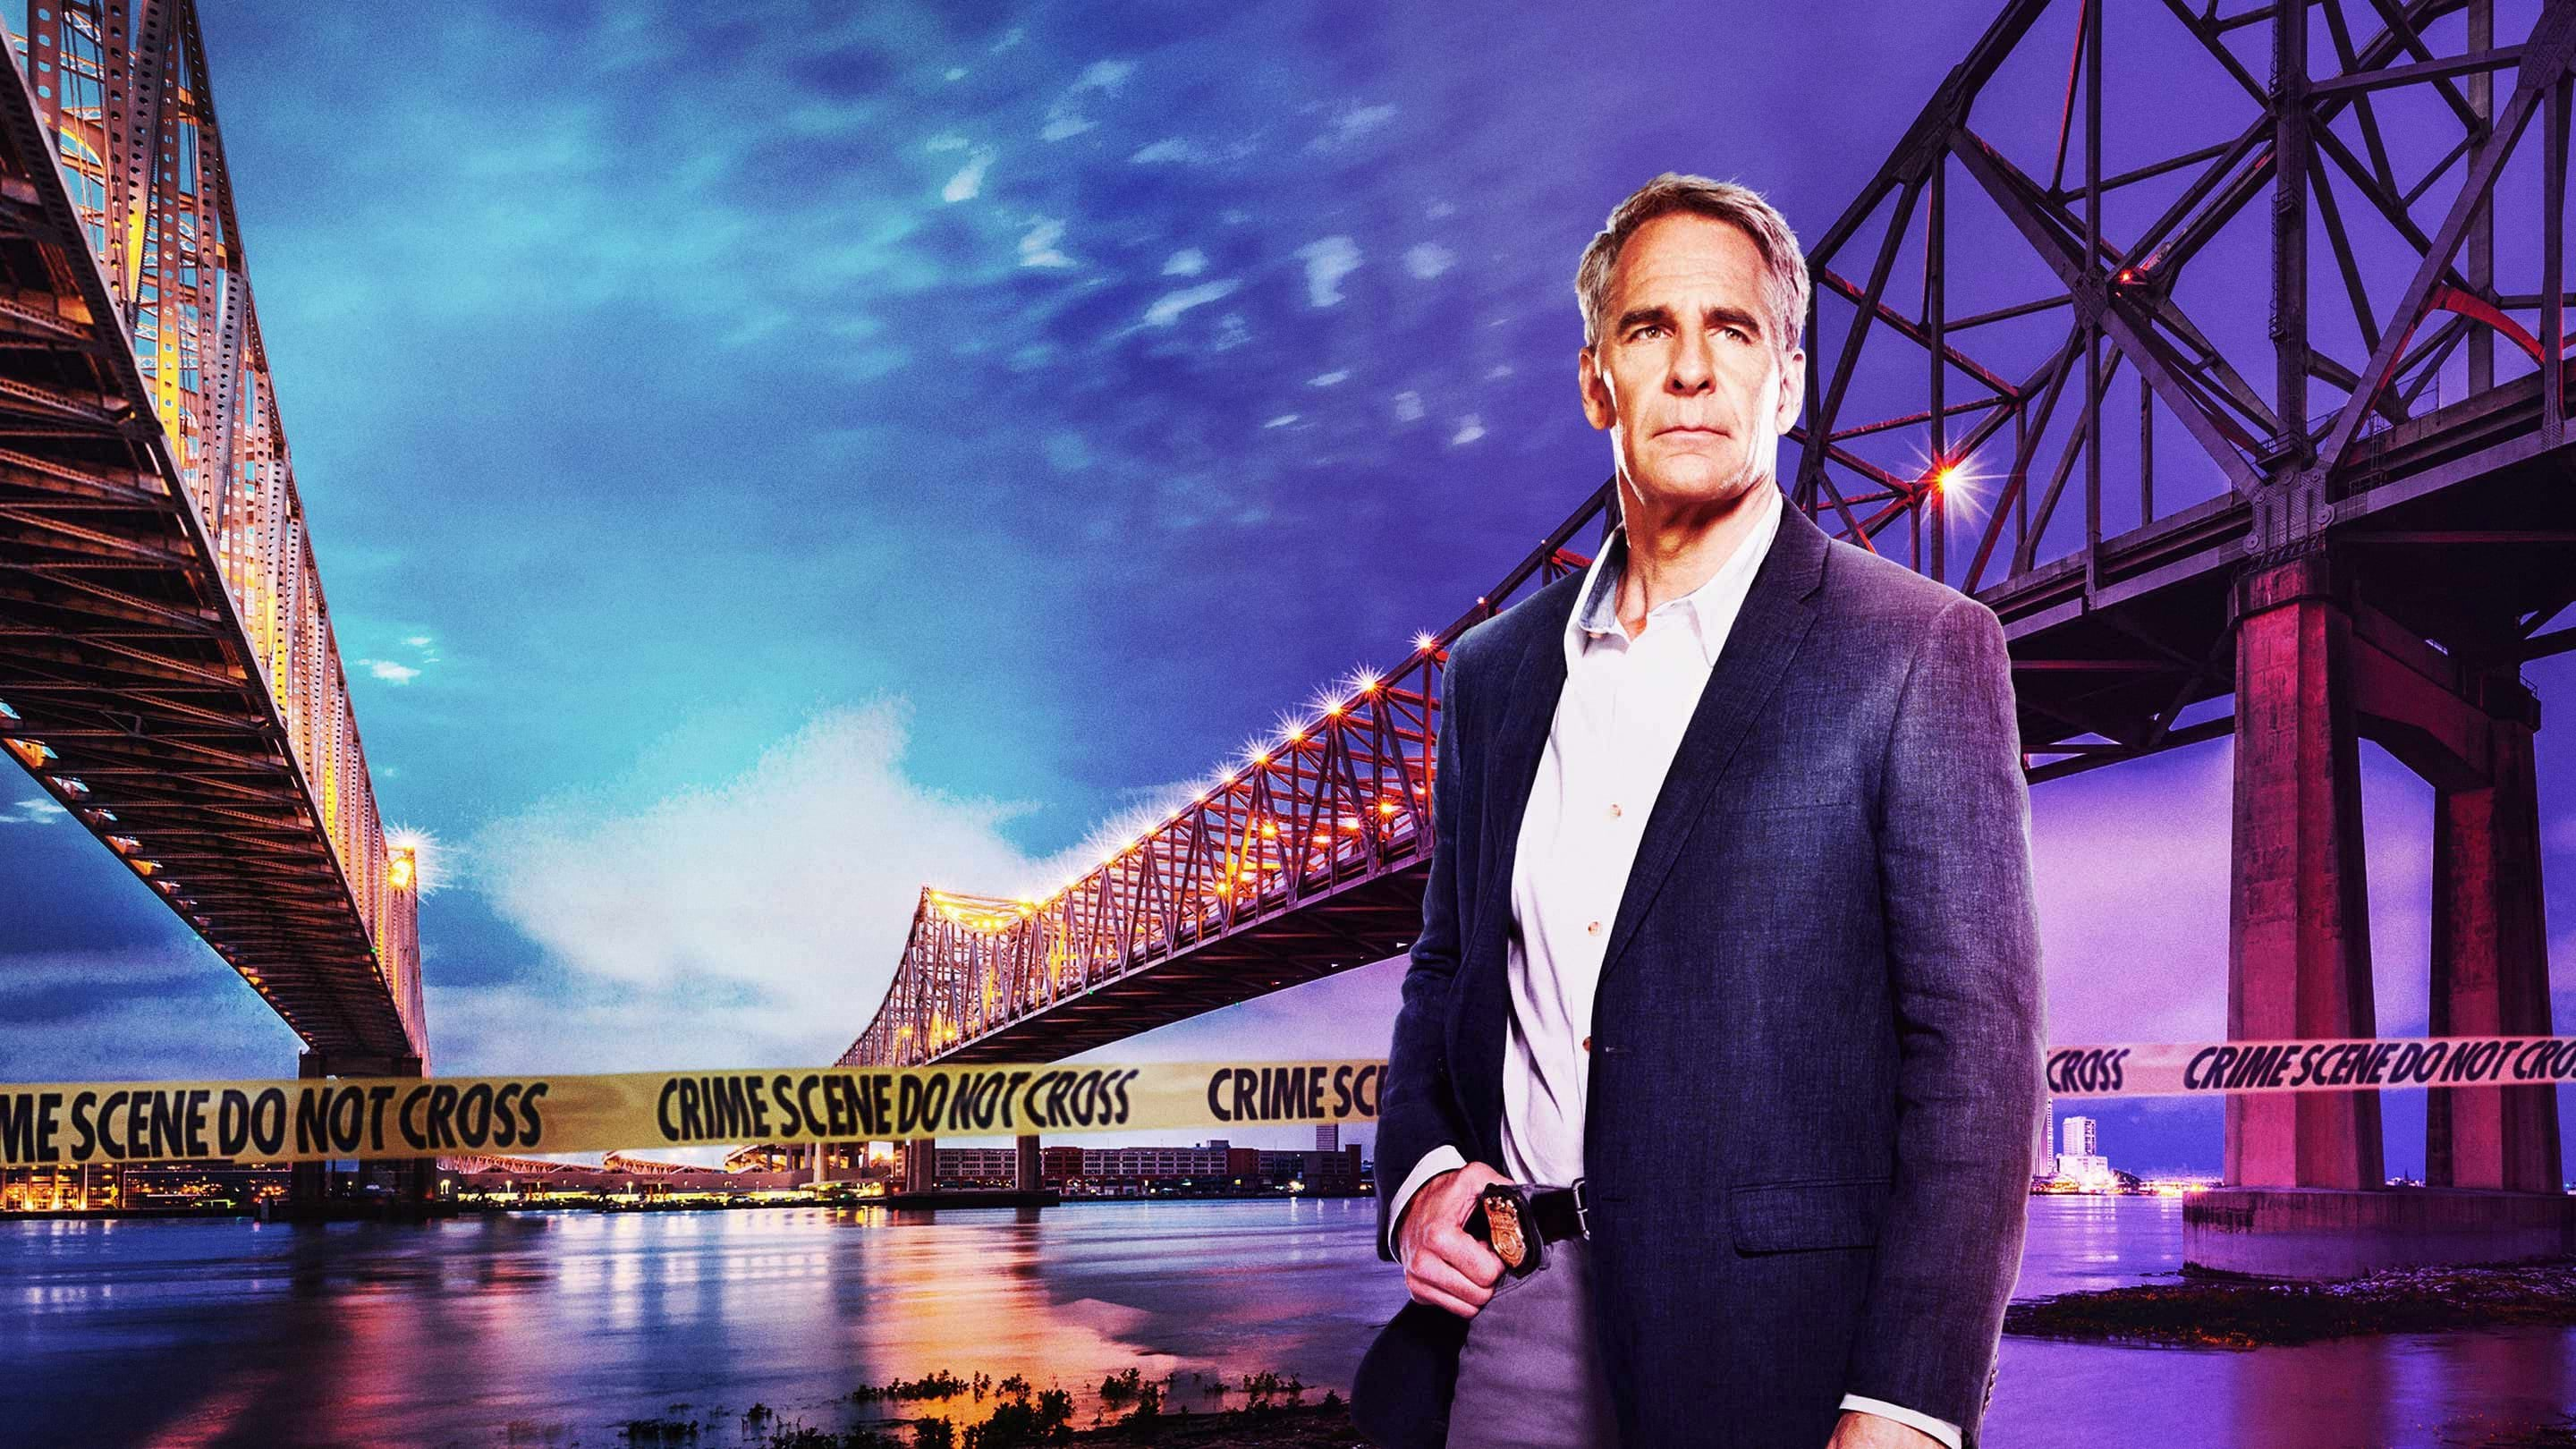 NCIS: New Orleans Season 7 Episode 6